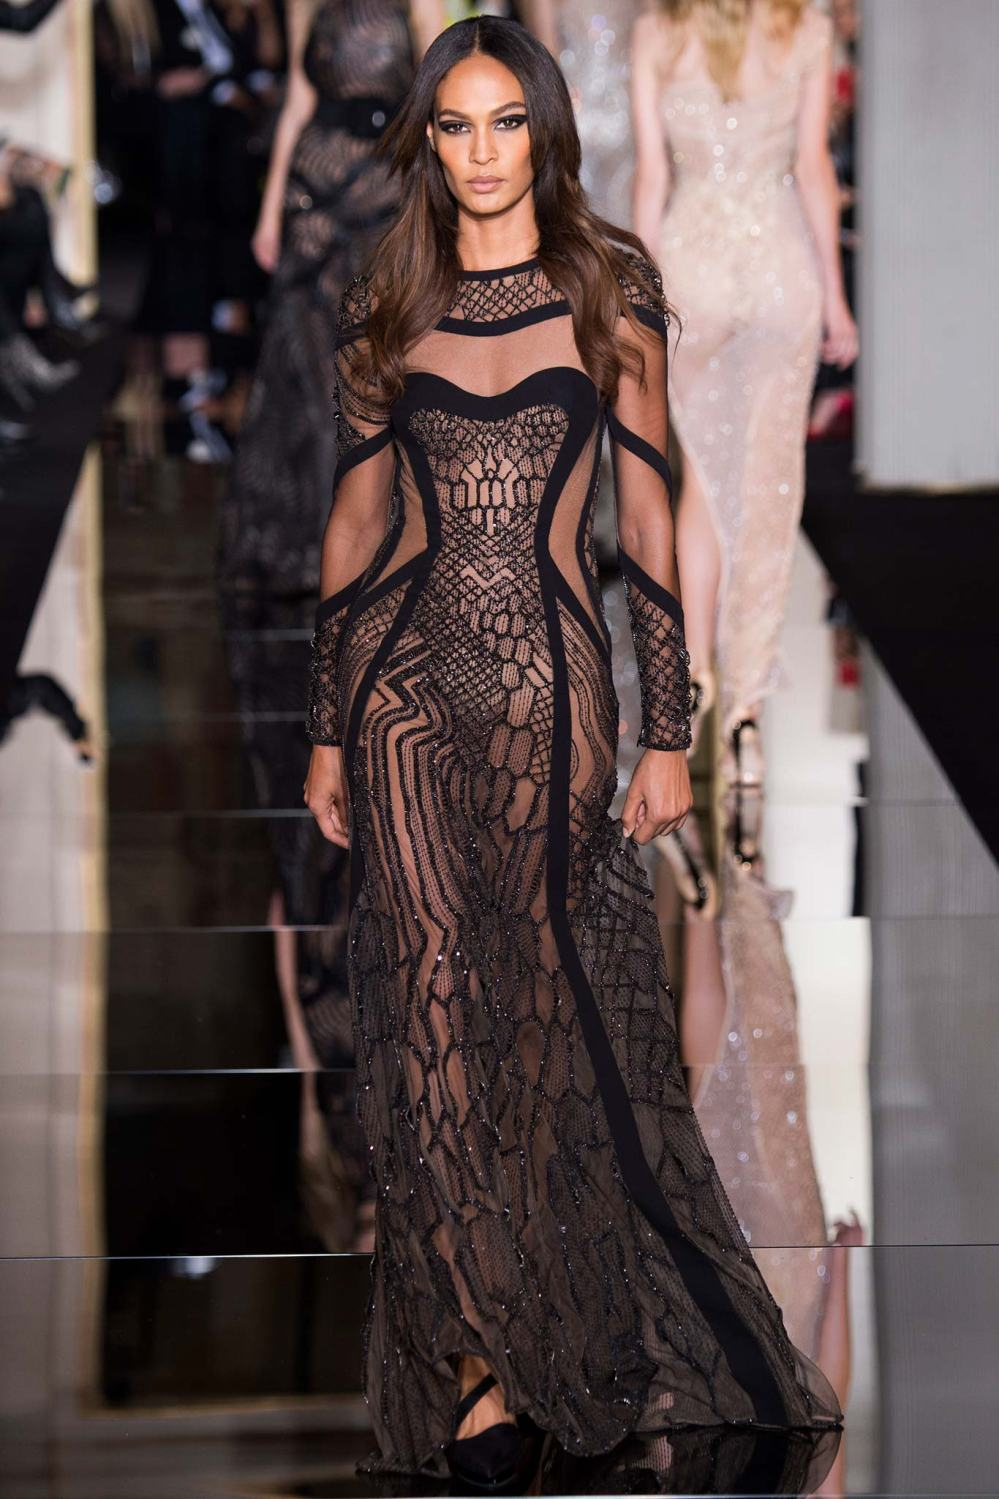 Atelier Versace, Spring/Summer 2015 Look 34 Model: Joan Smalls  Photo: Kim Weston Arnold/Indigitalimages.com